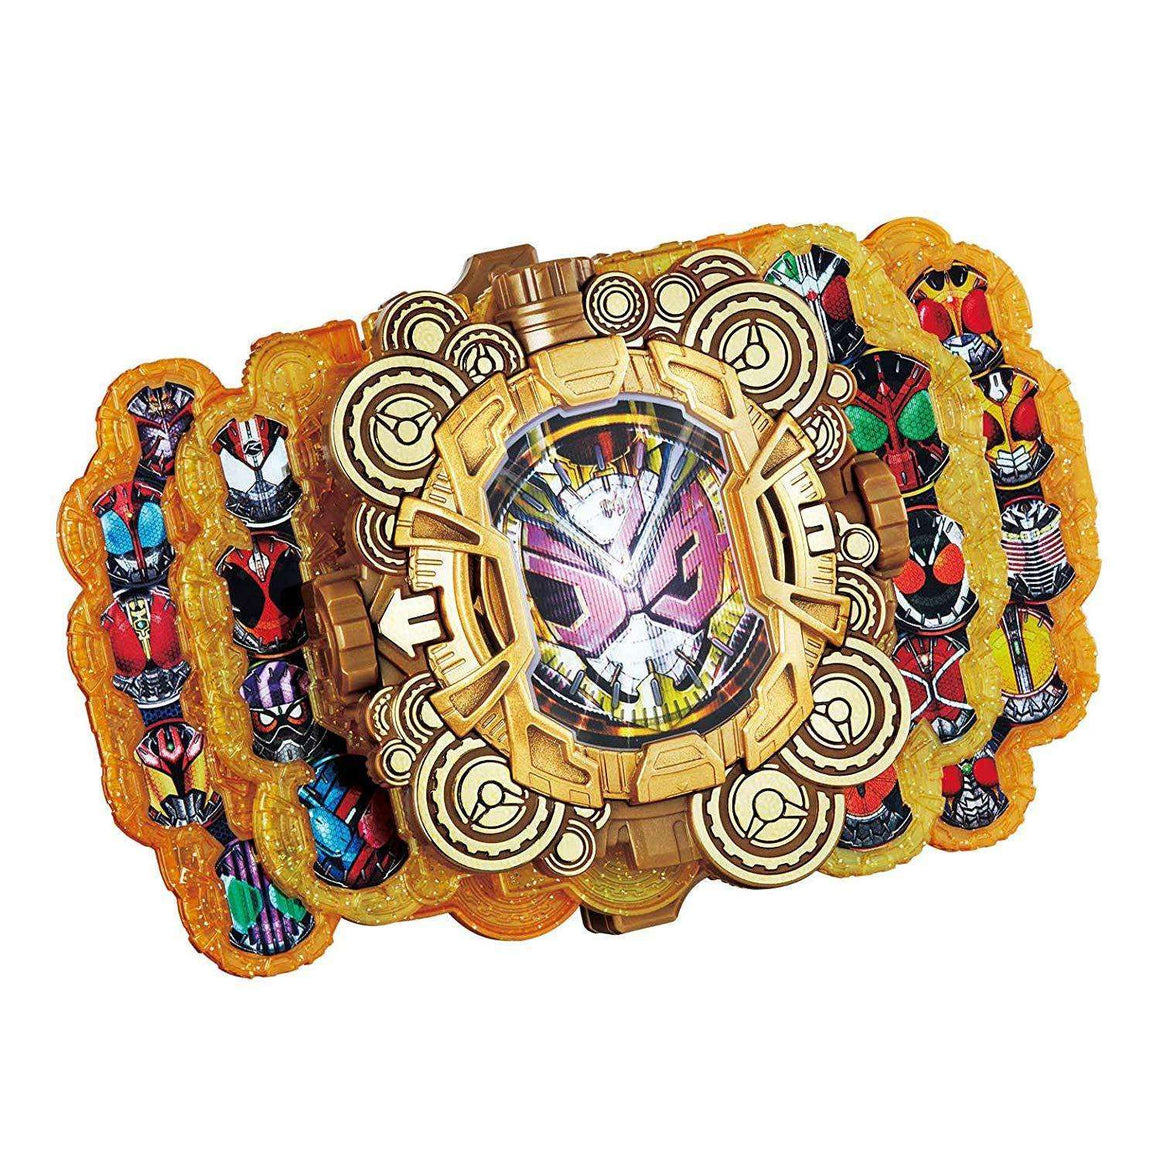 CSTOYS INTERNATIONAL:[LOOSE] Kamen Rider Zi-O: DX Grand Zi-O Ride Watch